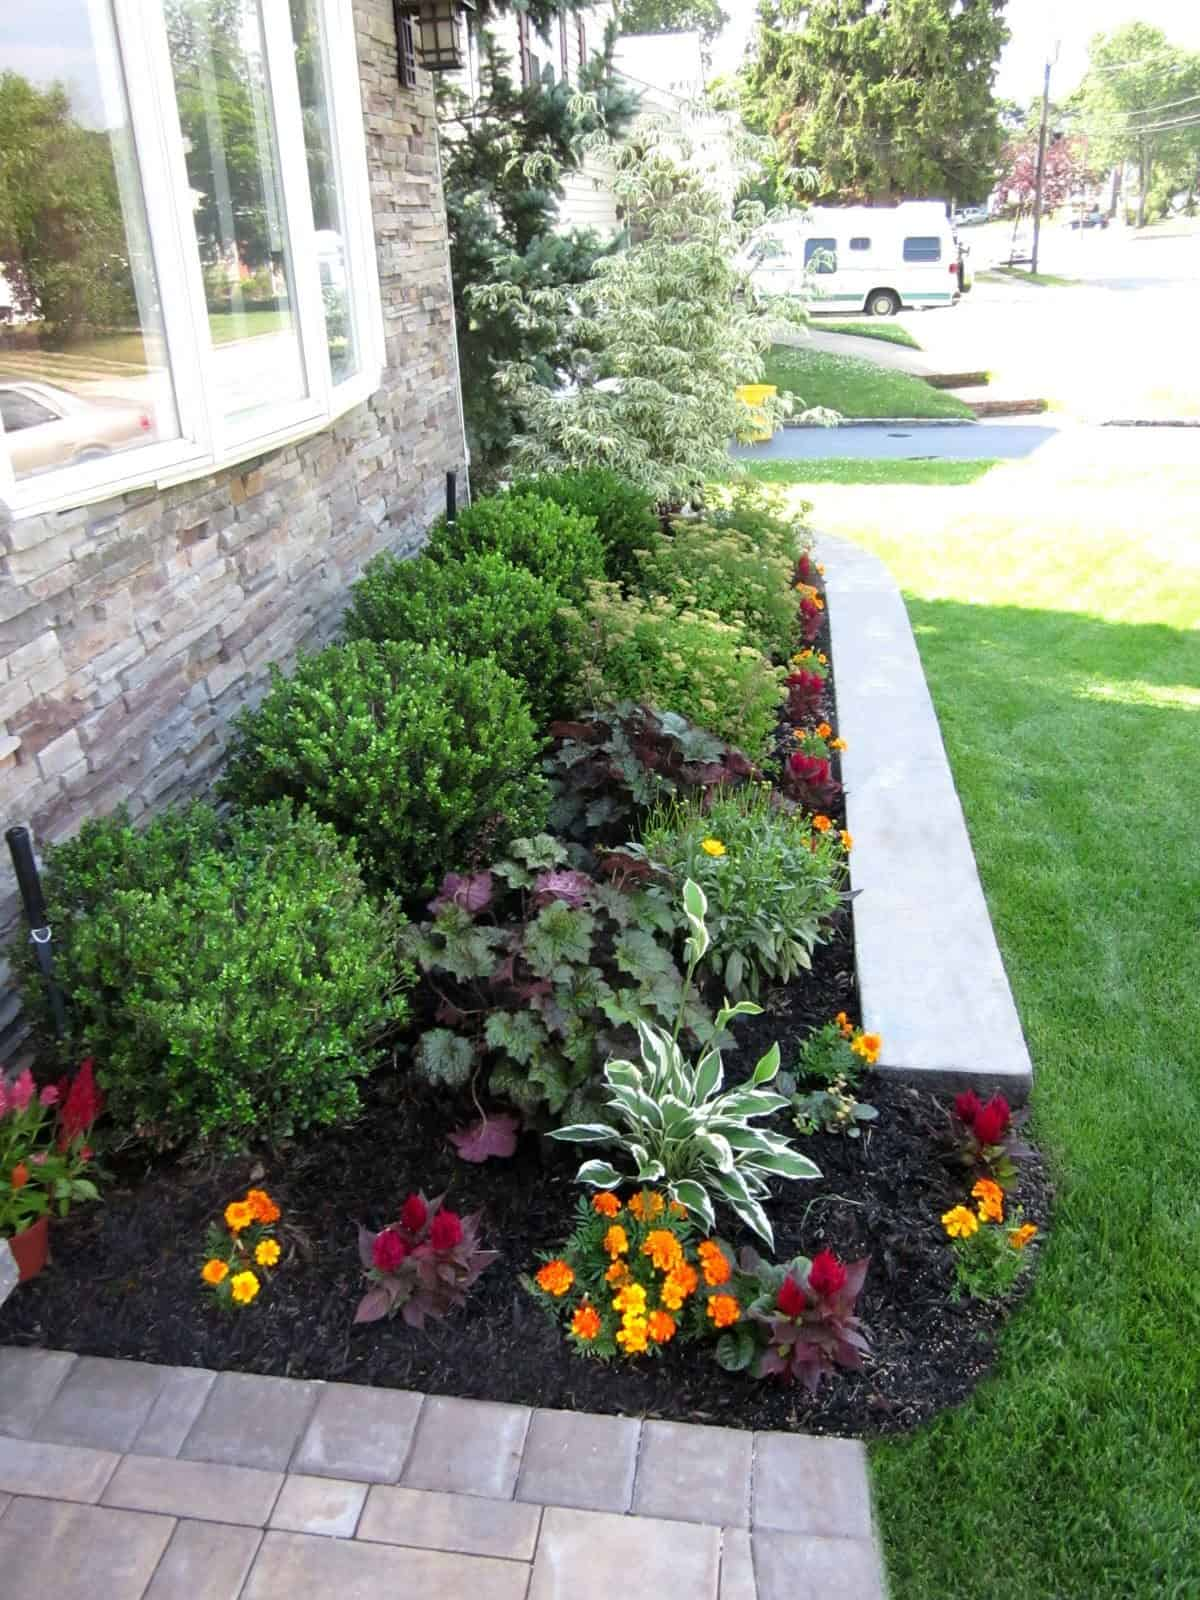 Landscape Plantings - Ilex Compacta, Heuchera Silver Scrolls, Spirea Anthony Waterer, and mixed annuals - Massapequa, Long Island NY